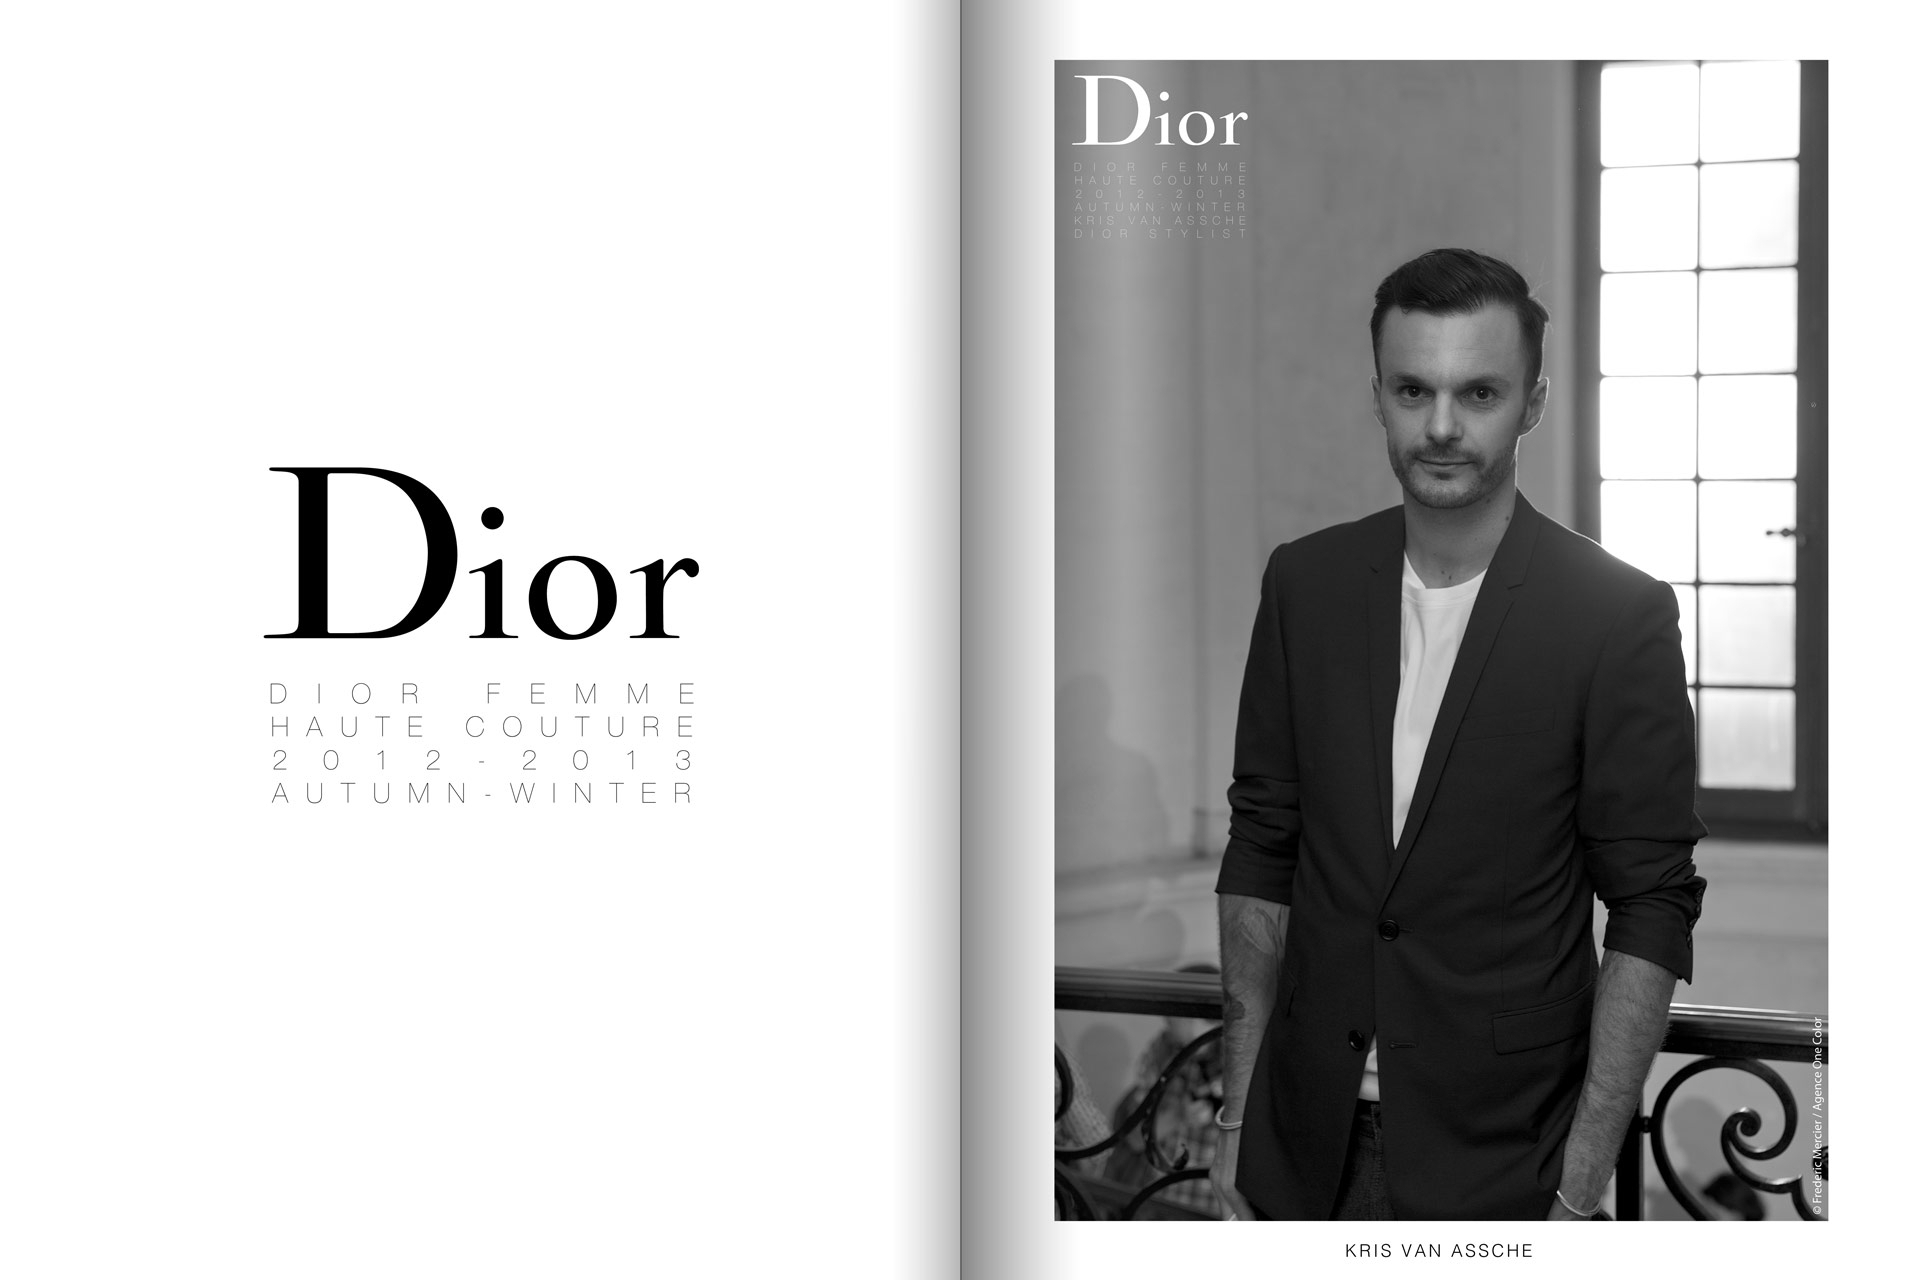 frederic mercier fashion photographer one color portraits people kris van assche for dior